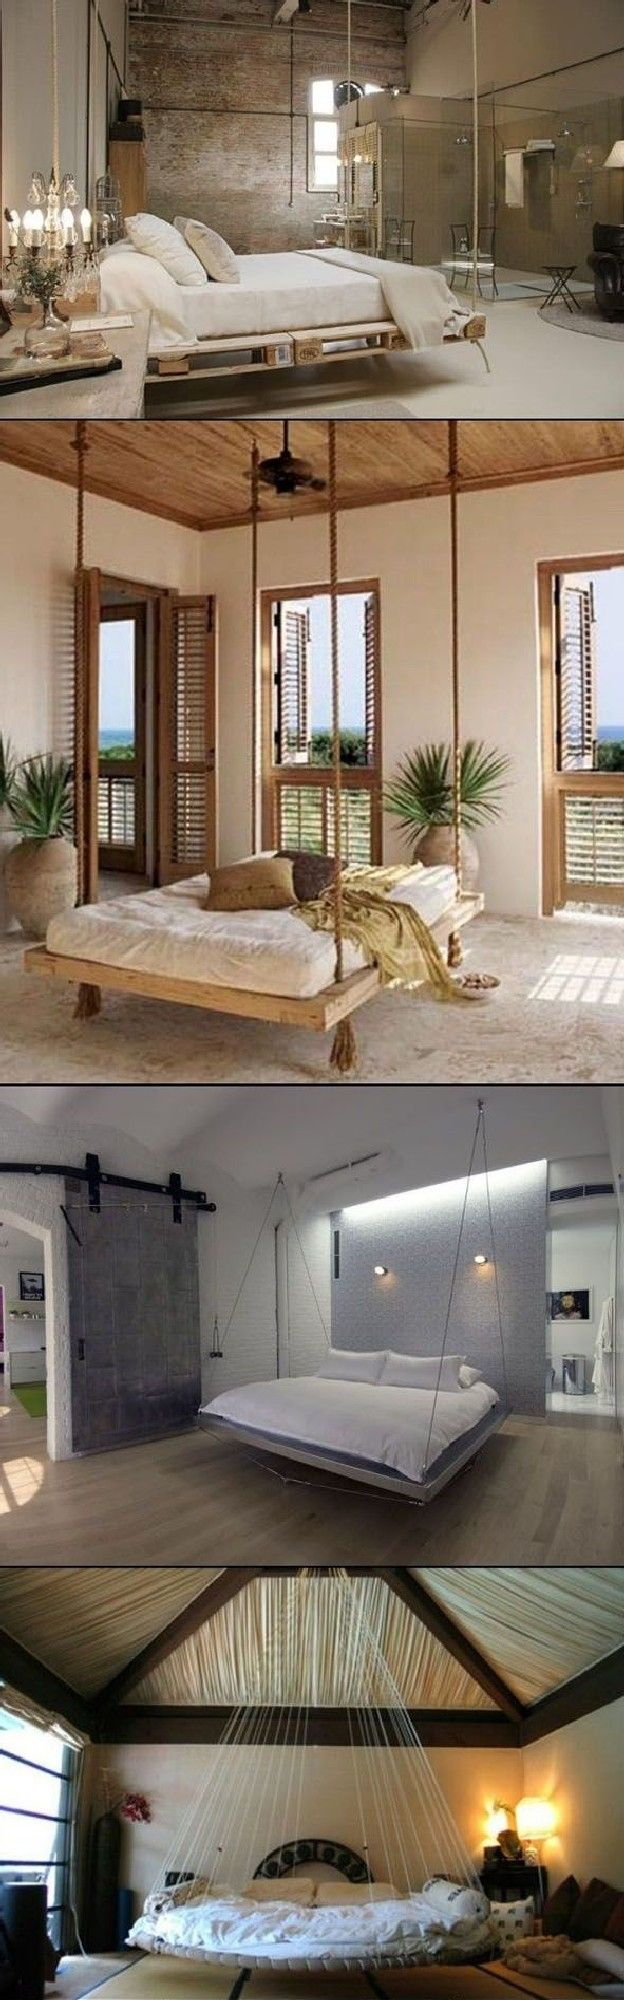 Inspiring Enhance Your Dream With Our 50 Amazing Floating Bed Frame Design  Ideas Https:/